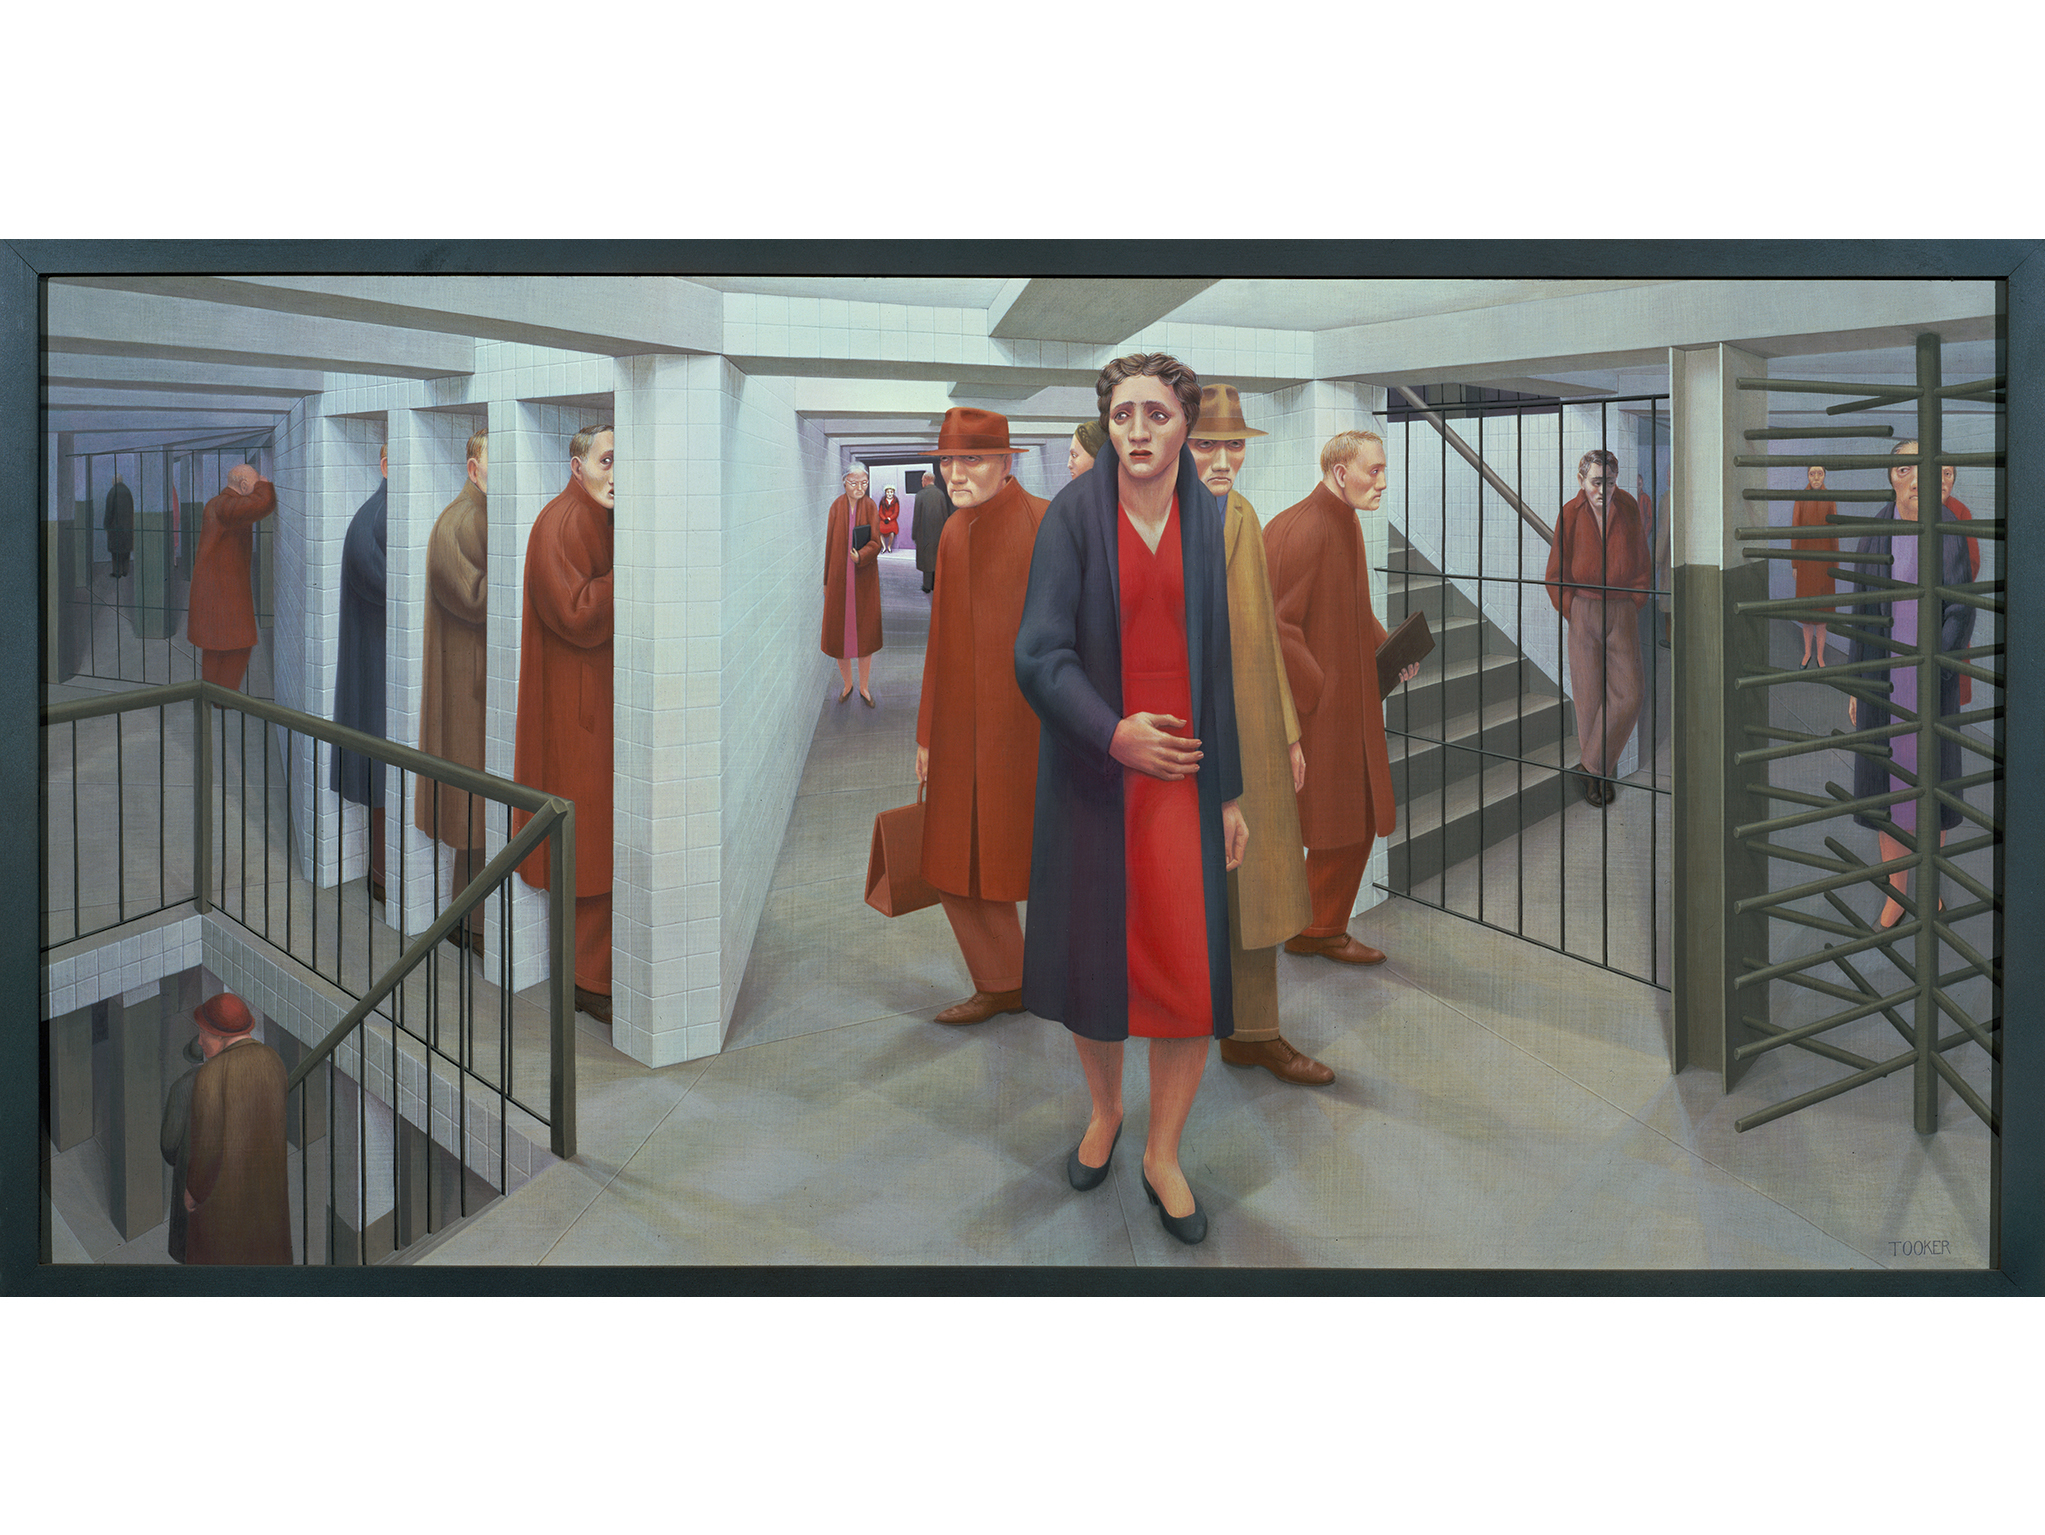 The Subway (1950), George Tooker